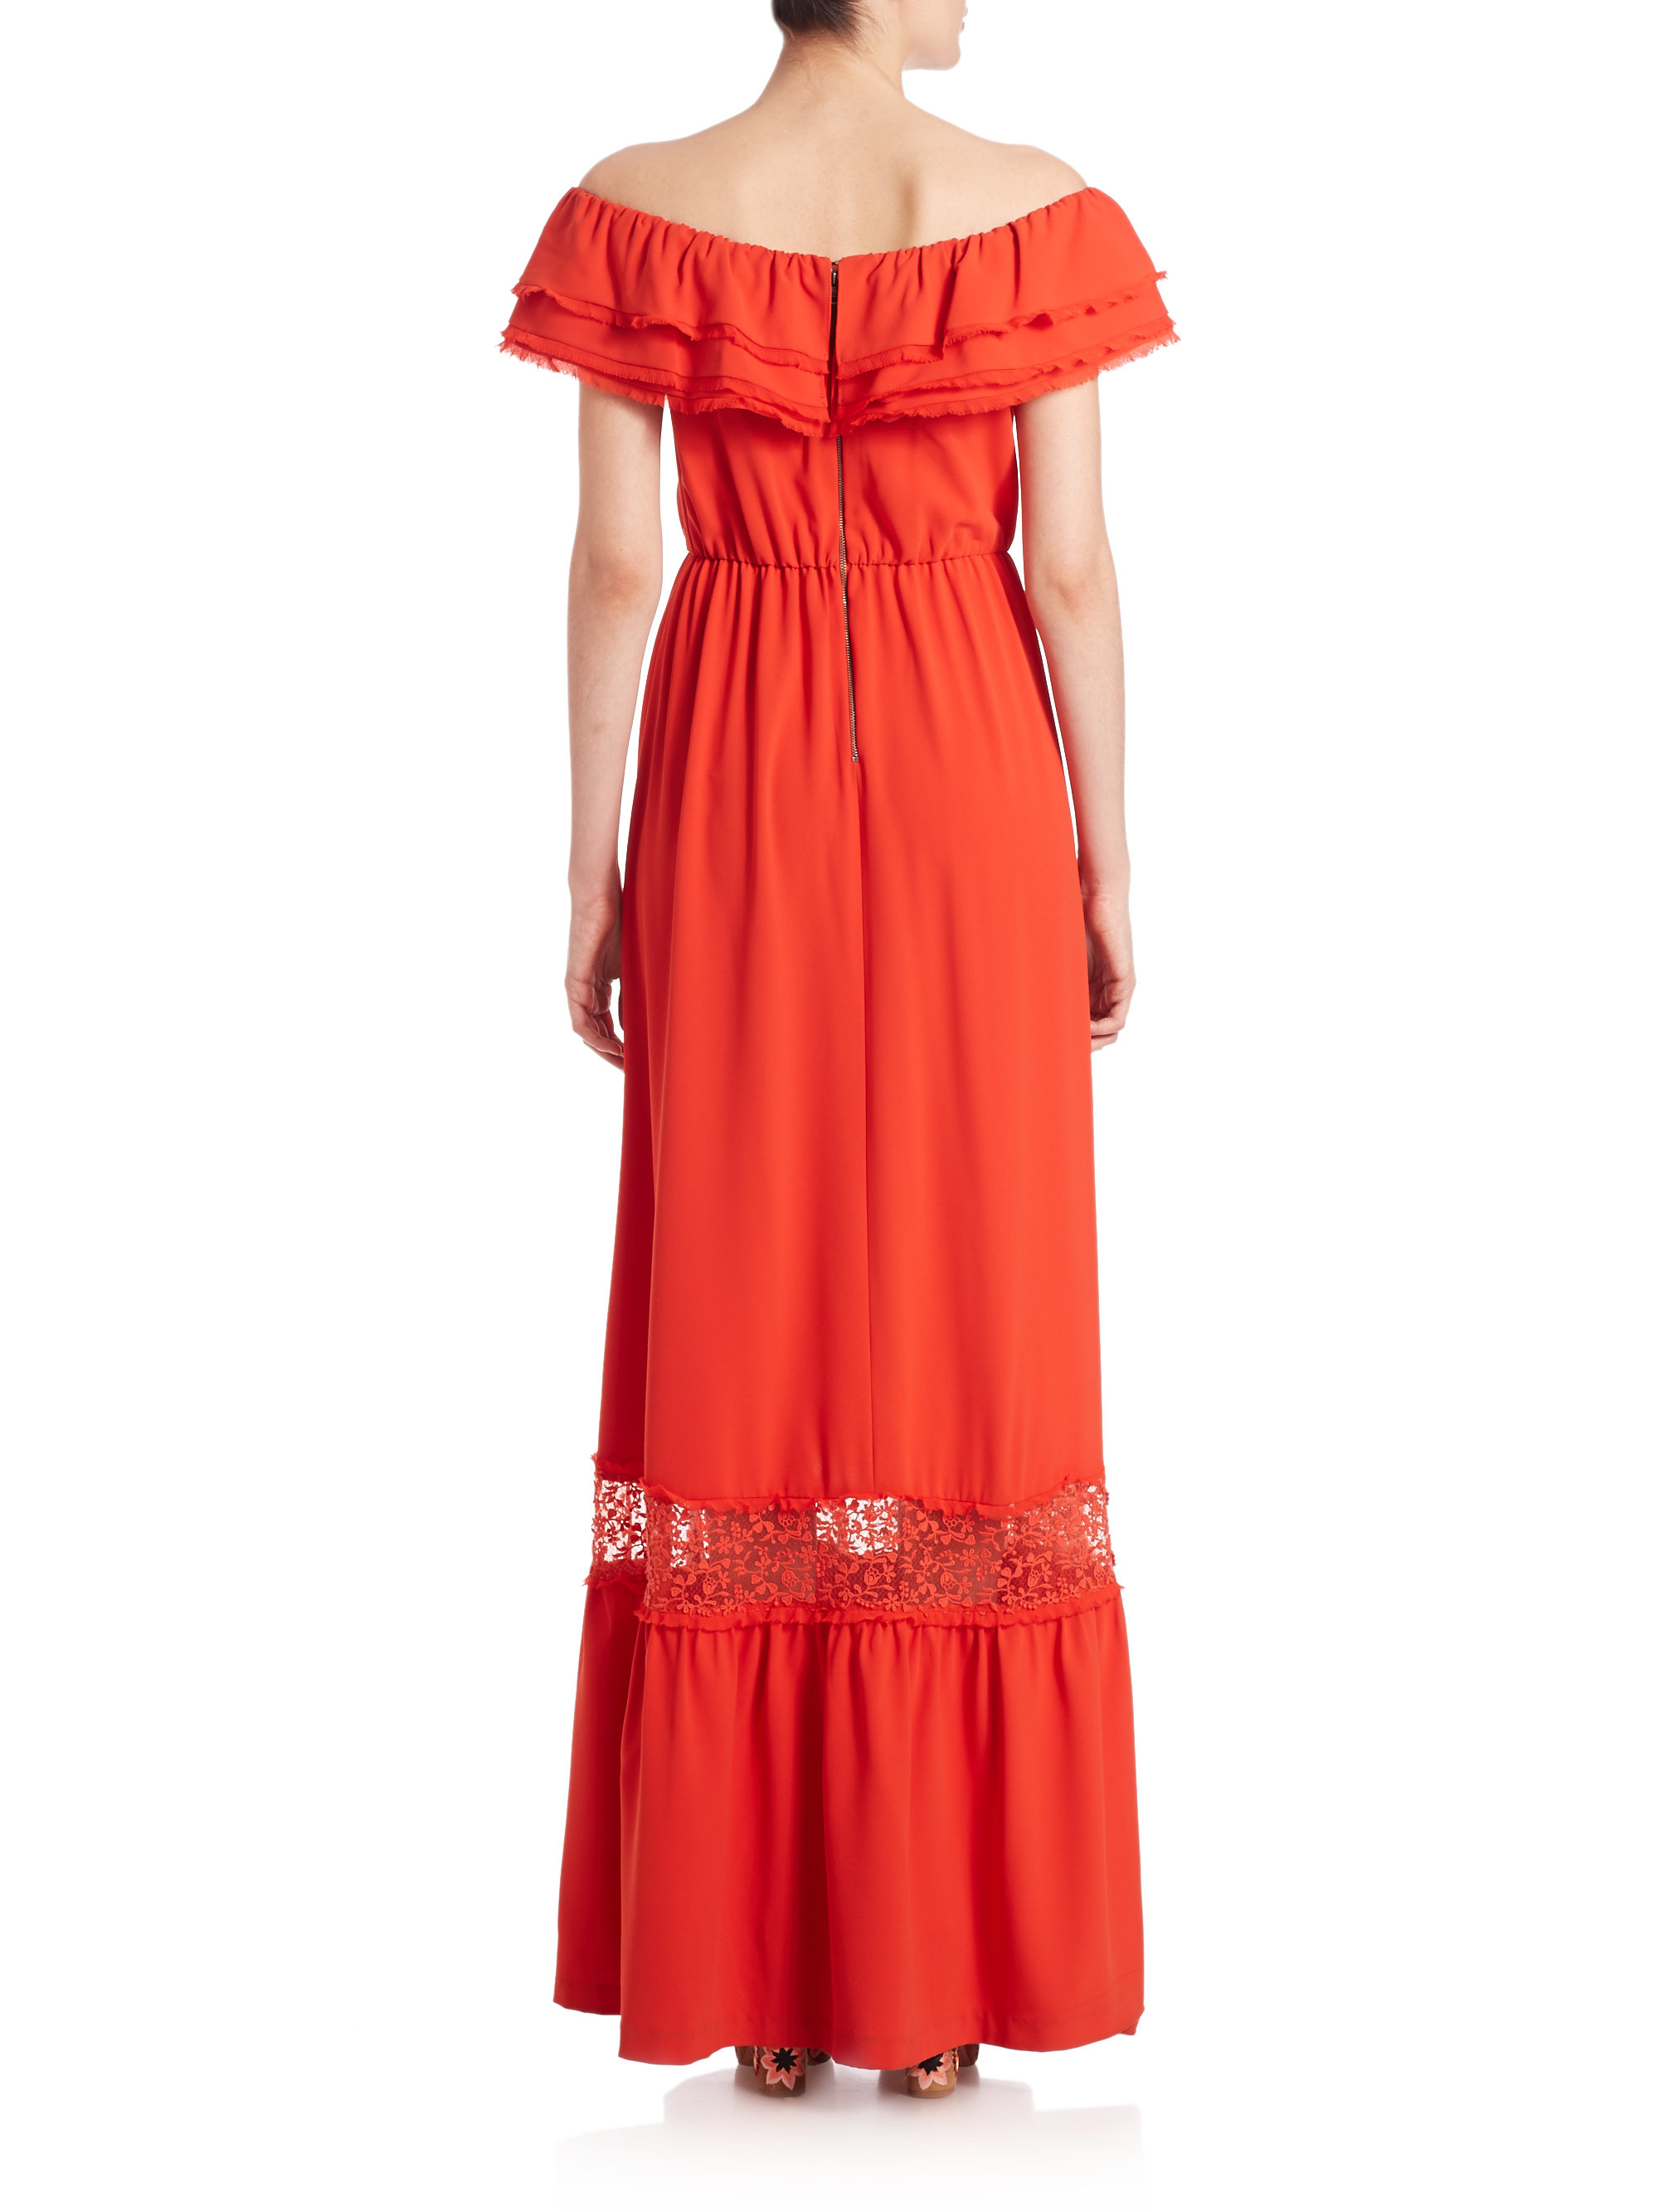 Lyst - Alice + Olivia Cheri Off-the-shoulder Ruffled Maxi Dress in Red f9786735c2